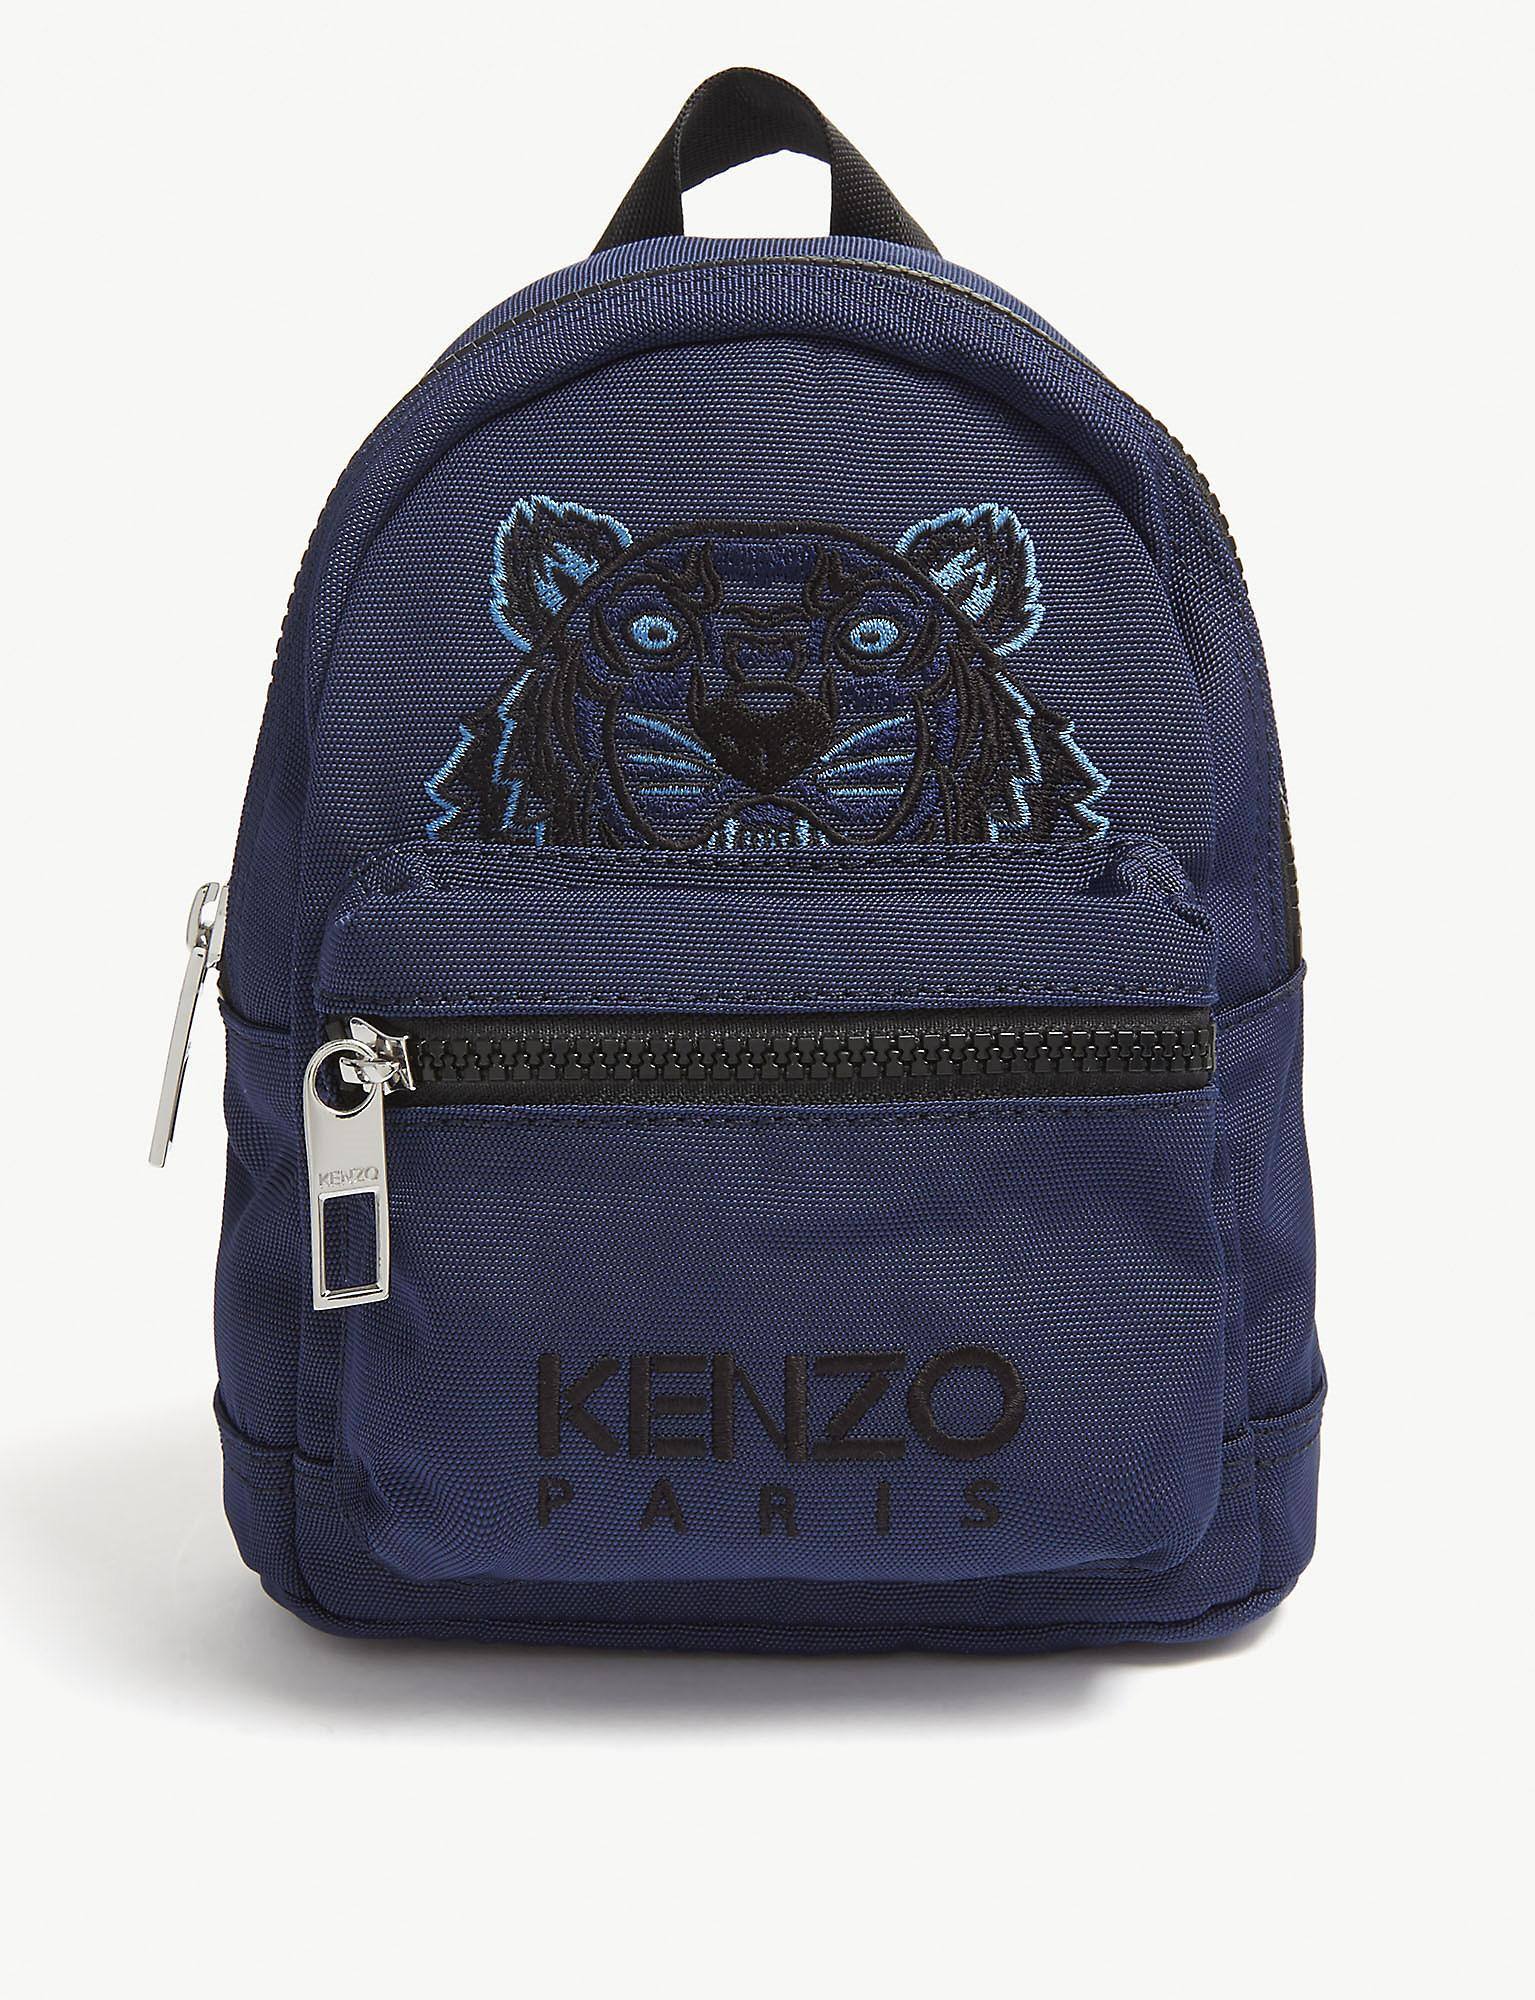 4f9a0661336 KENZO Navy Blue Tiger Print Mini Backpack in Blue - Lyst